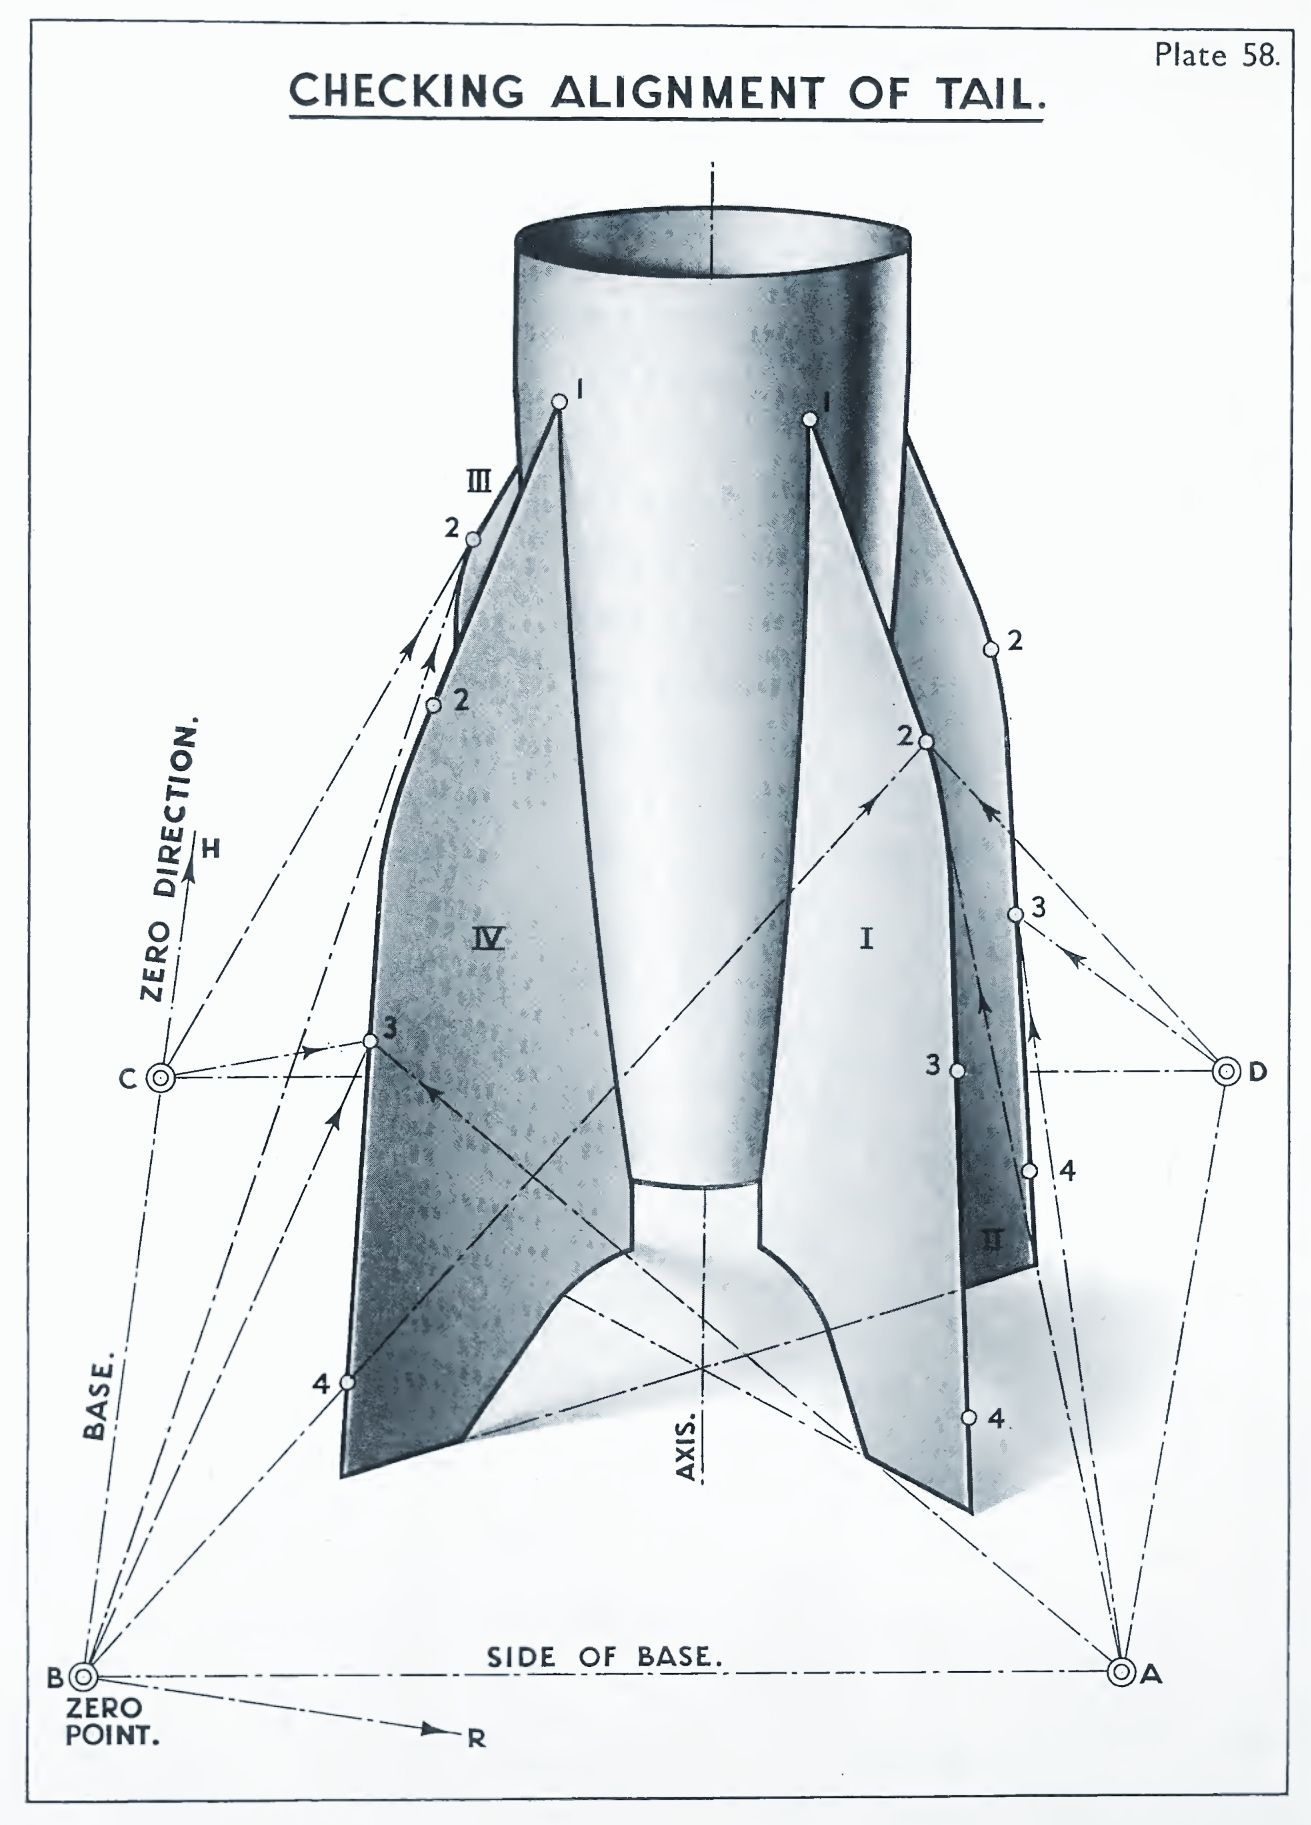 hight resolution of v 2 tail project mercury rocket launch apollo missions space exploration